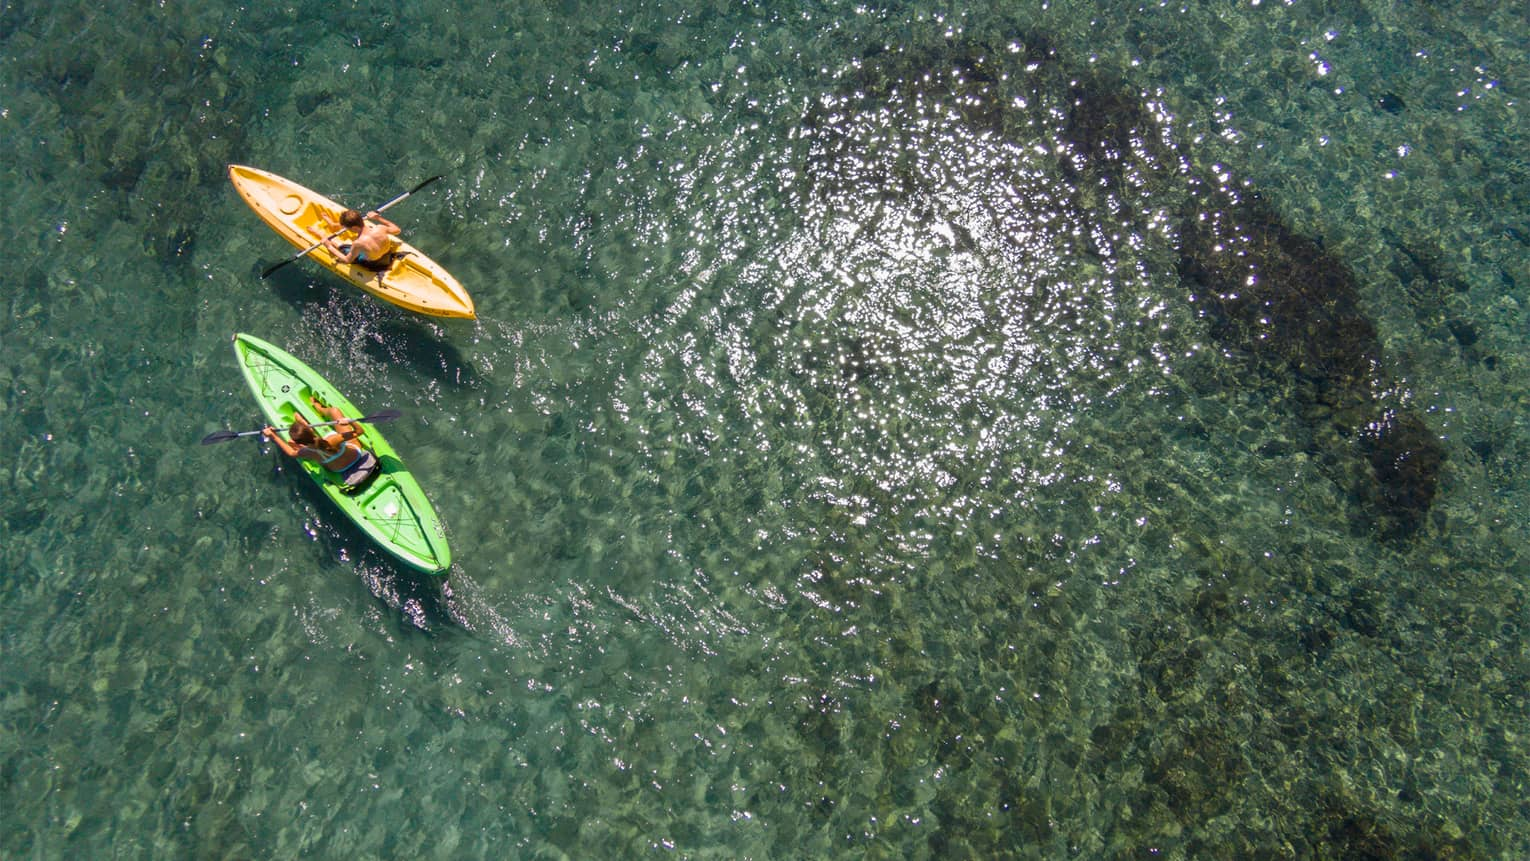 Aerial view of man and woman in green and orange kayaks on reef